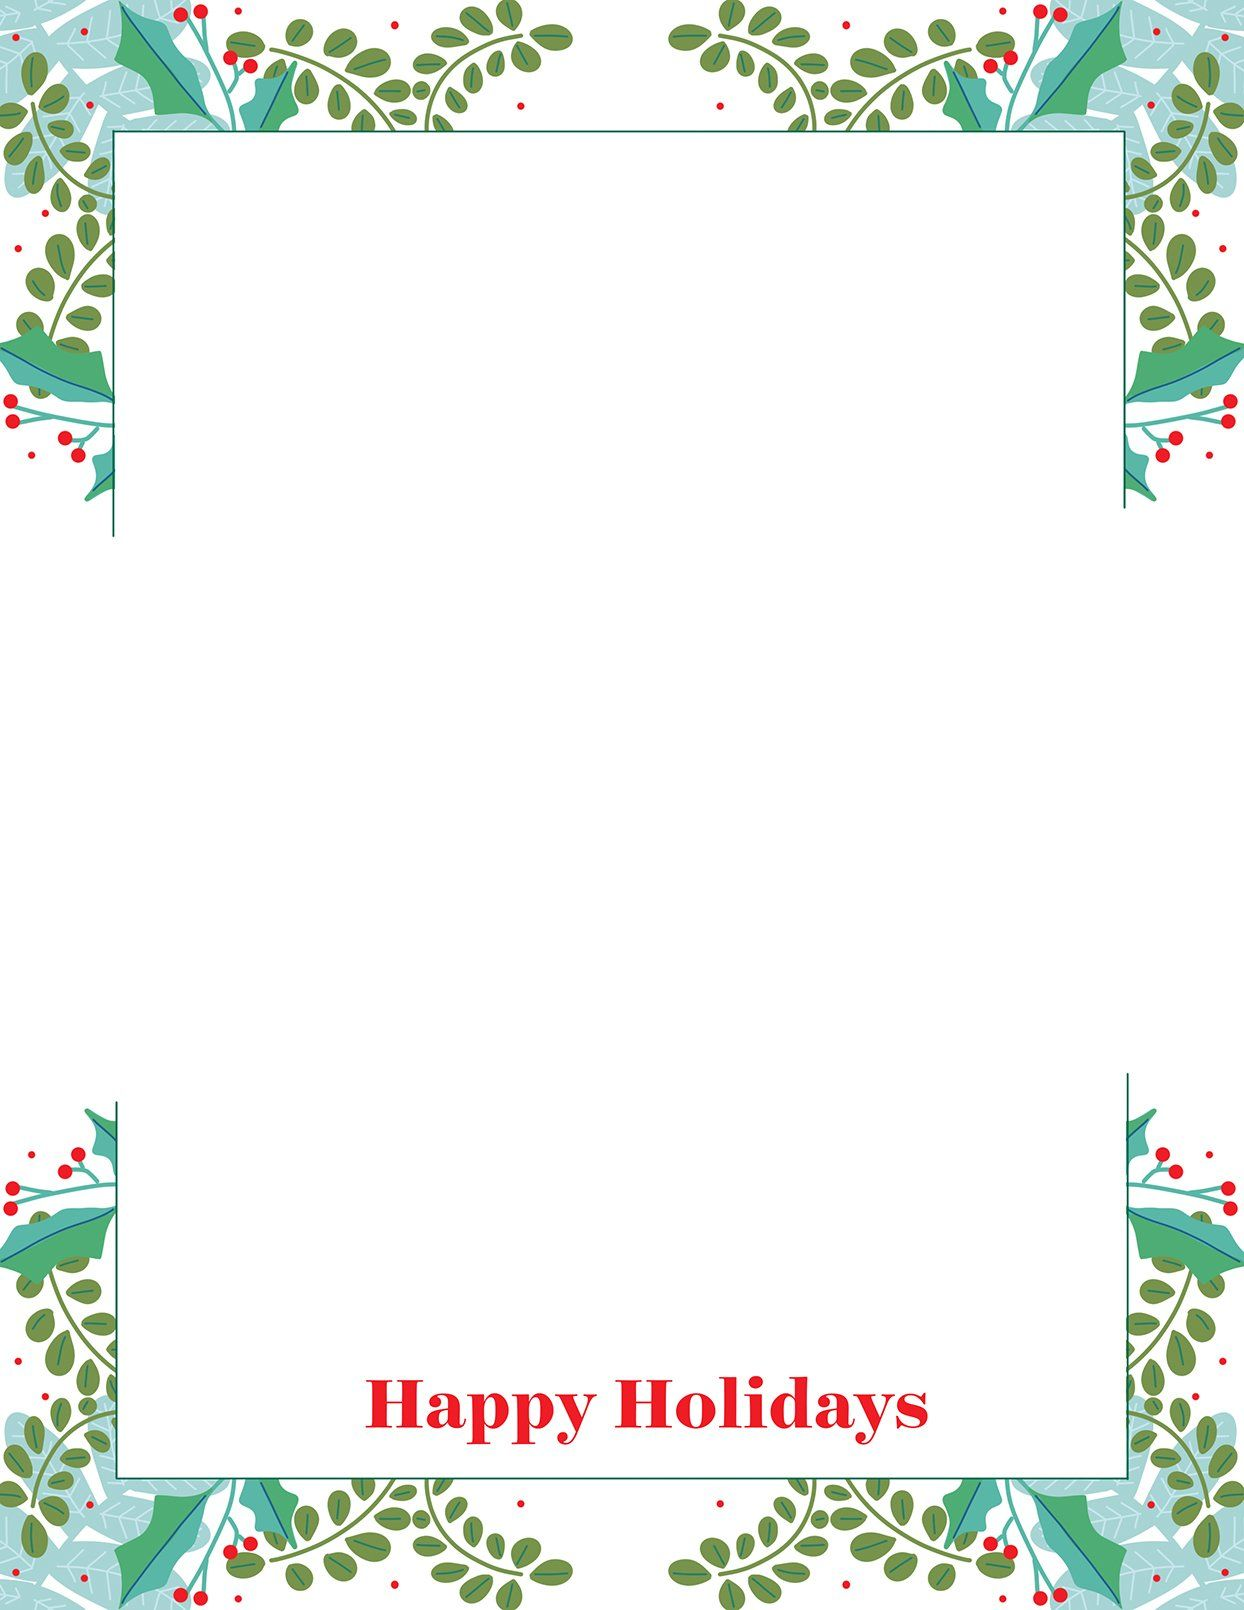 33 Free Templates to Help You Send Holiday Cheer